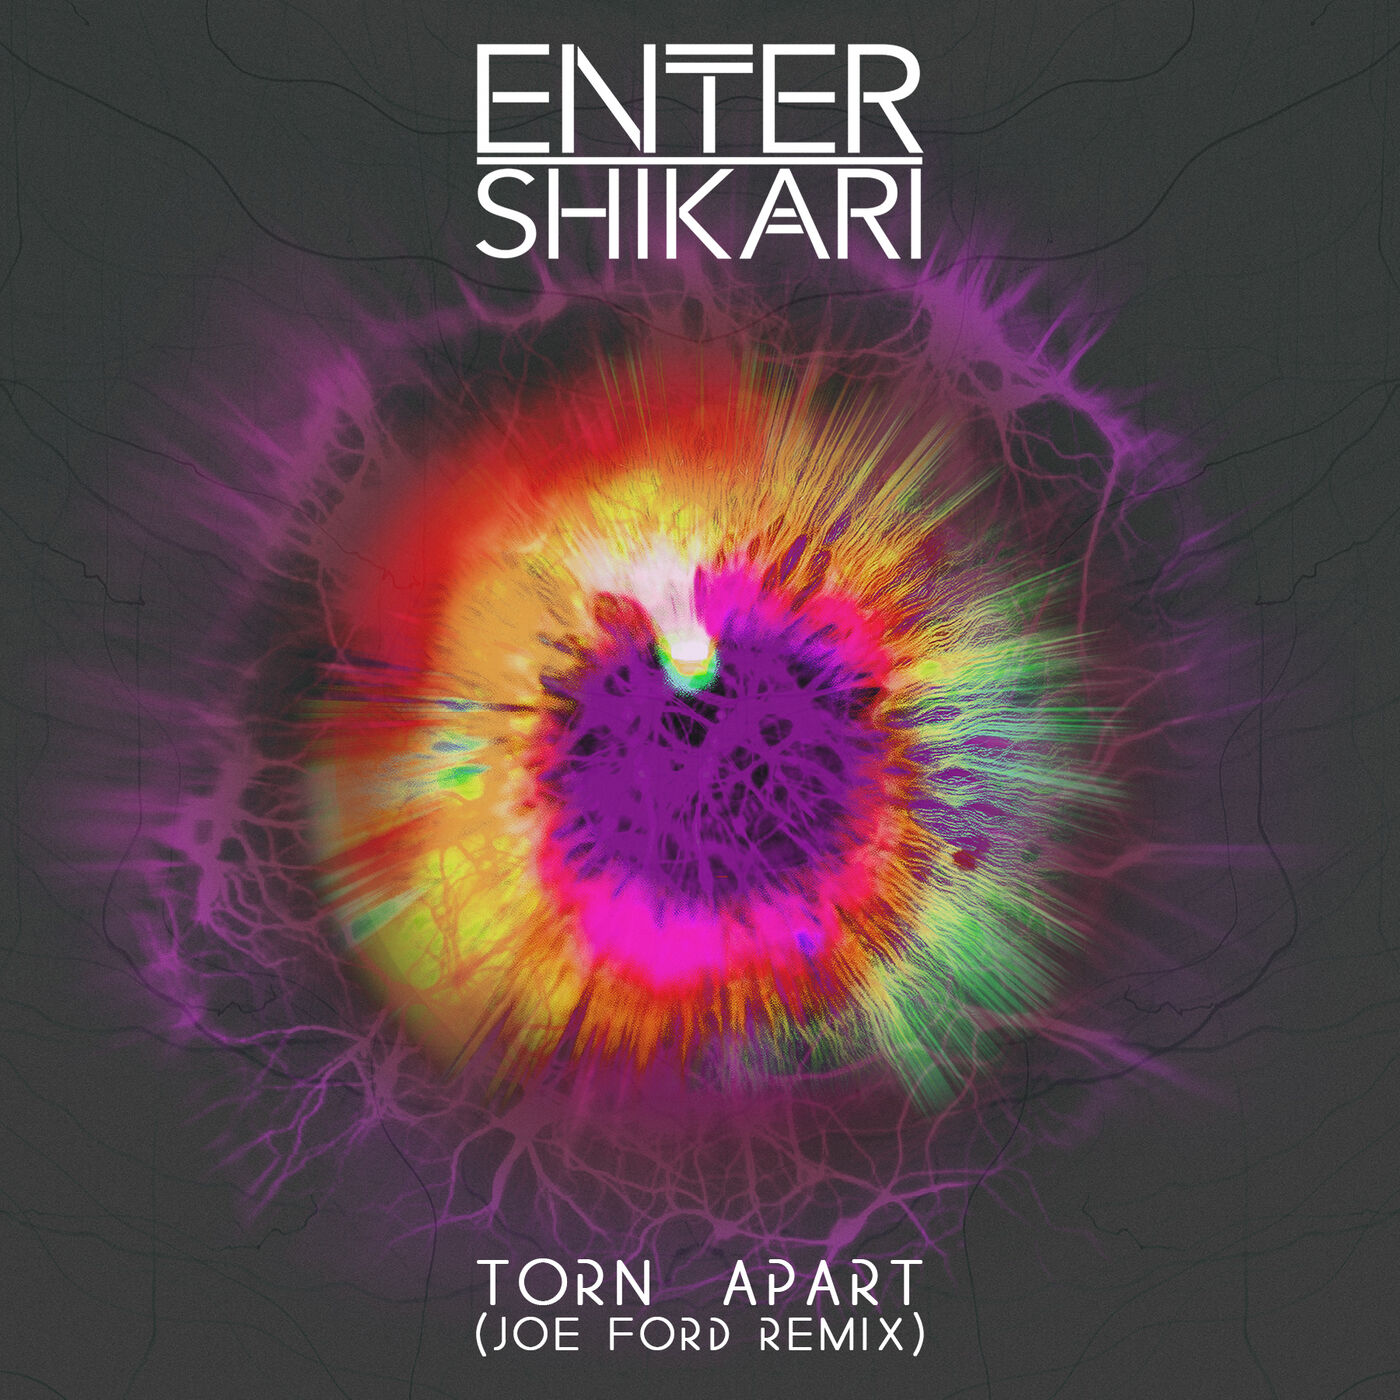 Enter Shikari - Torn Apart (Joe Ford Remix) [single] (2016)